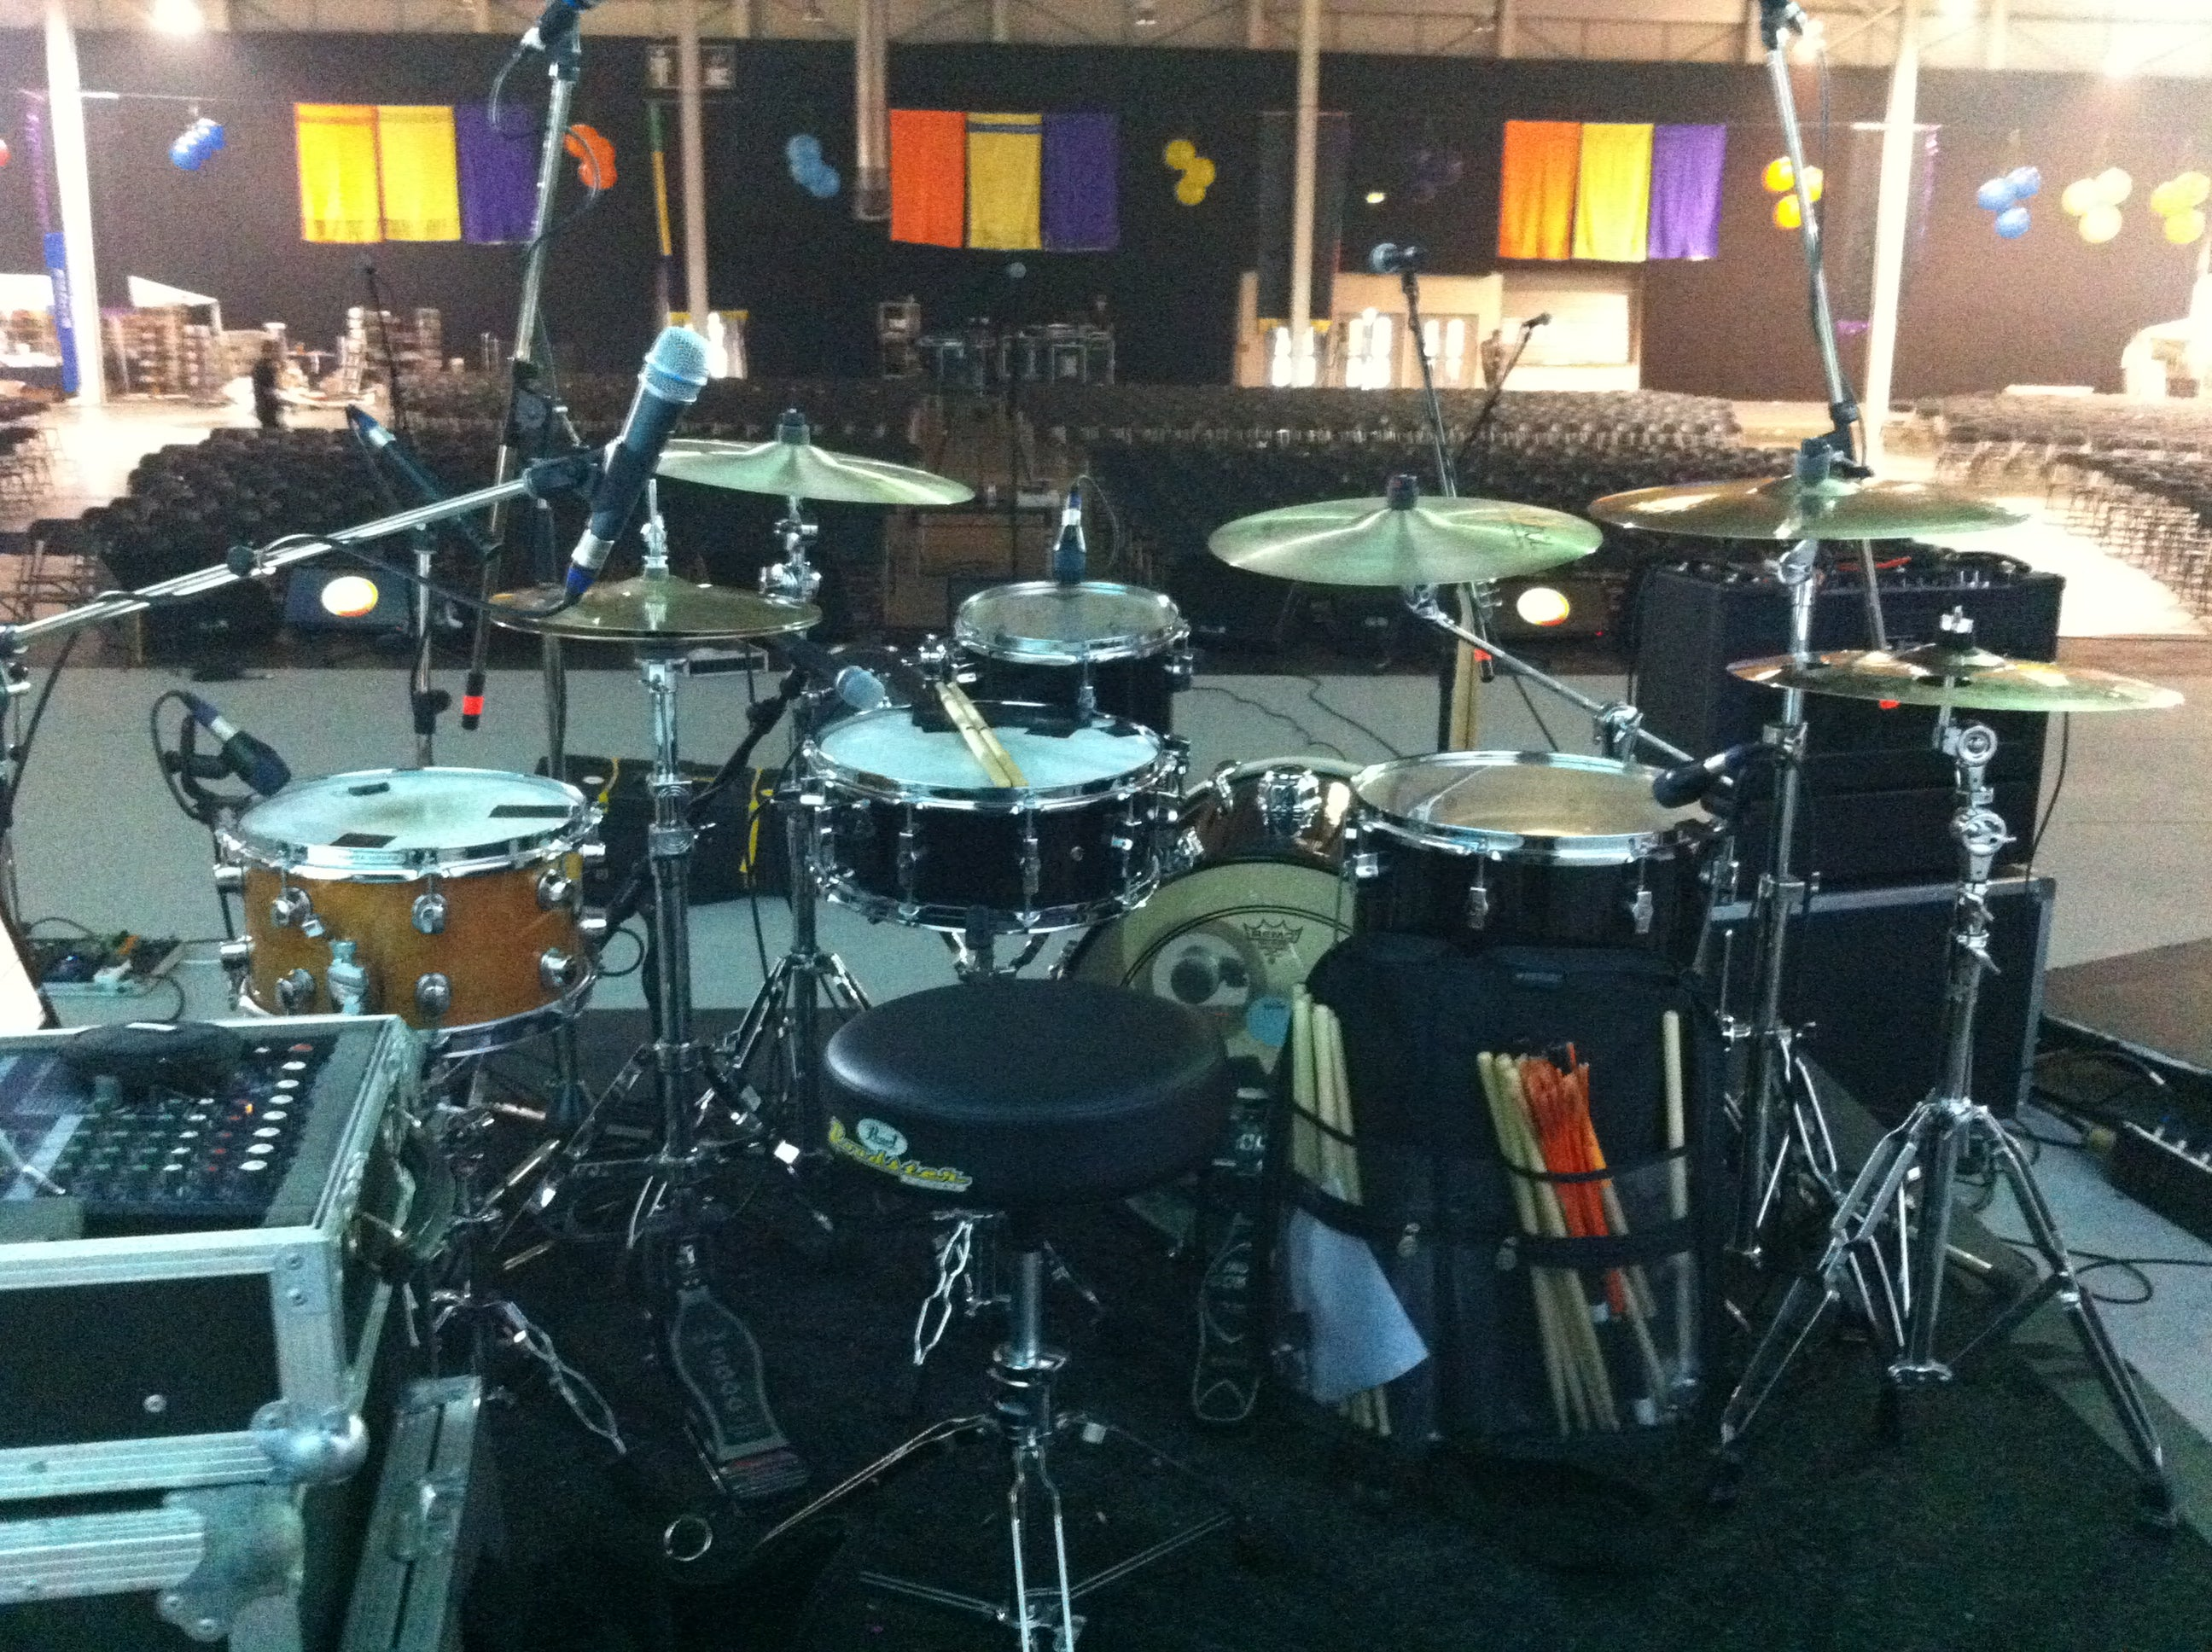 Catalyst Festival 2013 Drum kit